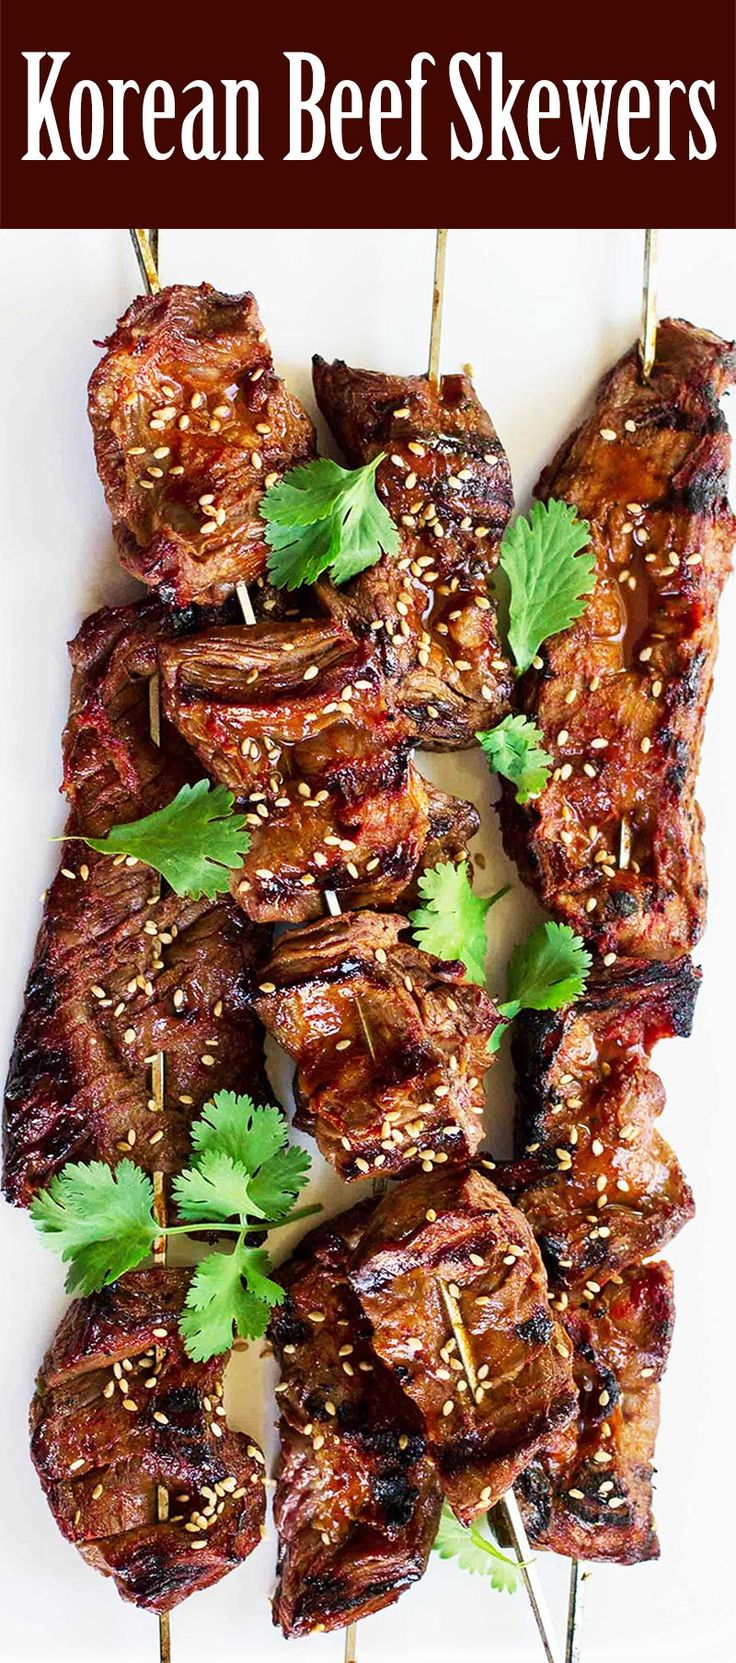 Grilled Korean Beef Skewers! A little sweet, a little spicy. YUM Great for the BBQ! #LaborDay